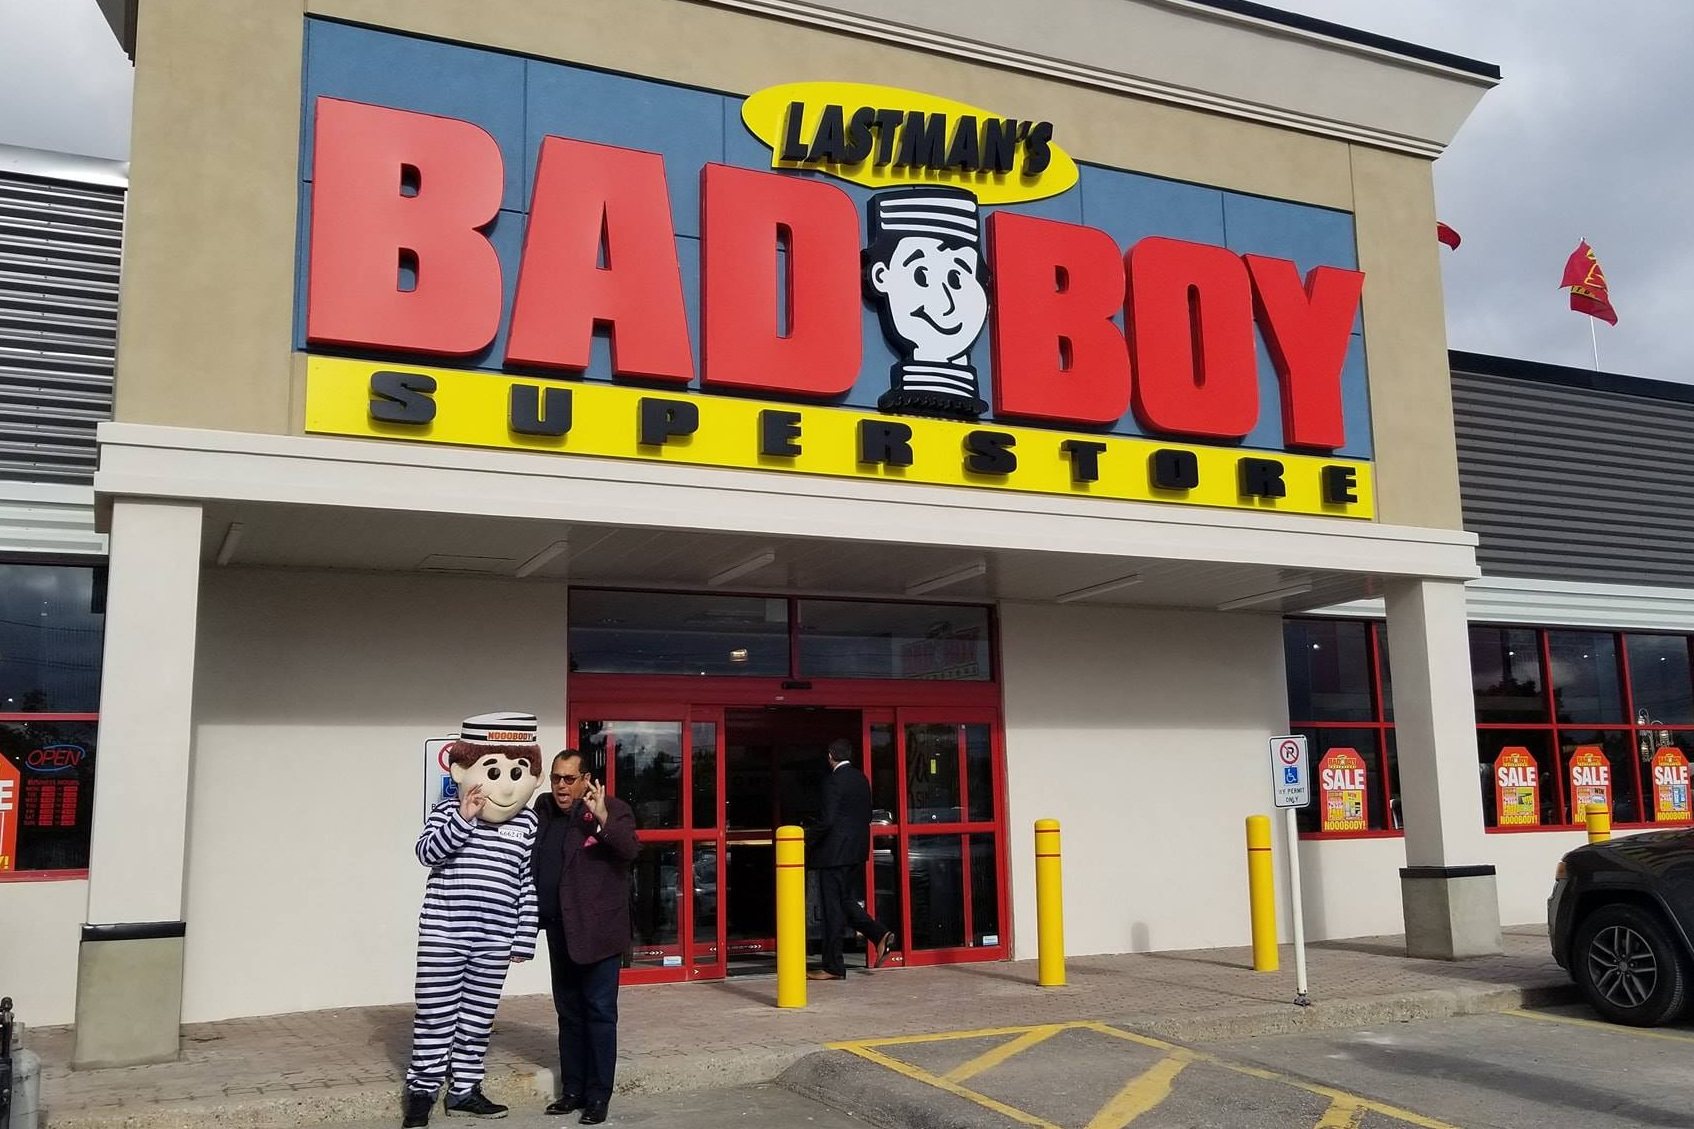 BLAYNE LASTMAN AND THE BAD BOY FURNITURE MASCOT OUTSIDE THEIR BURLINGTON, ON LOCATION PHOTO: LASTMAN'S BAD BOY VIA FACEBOOK